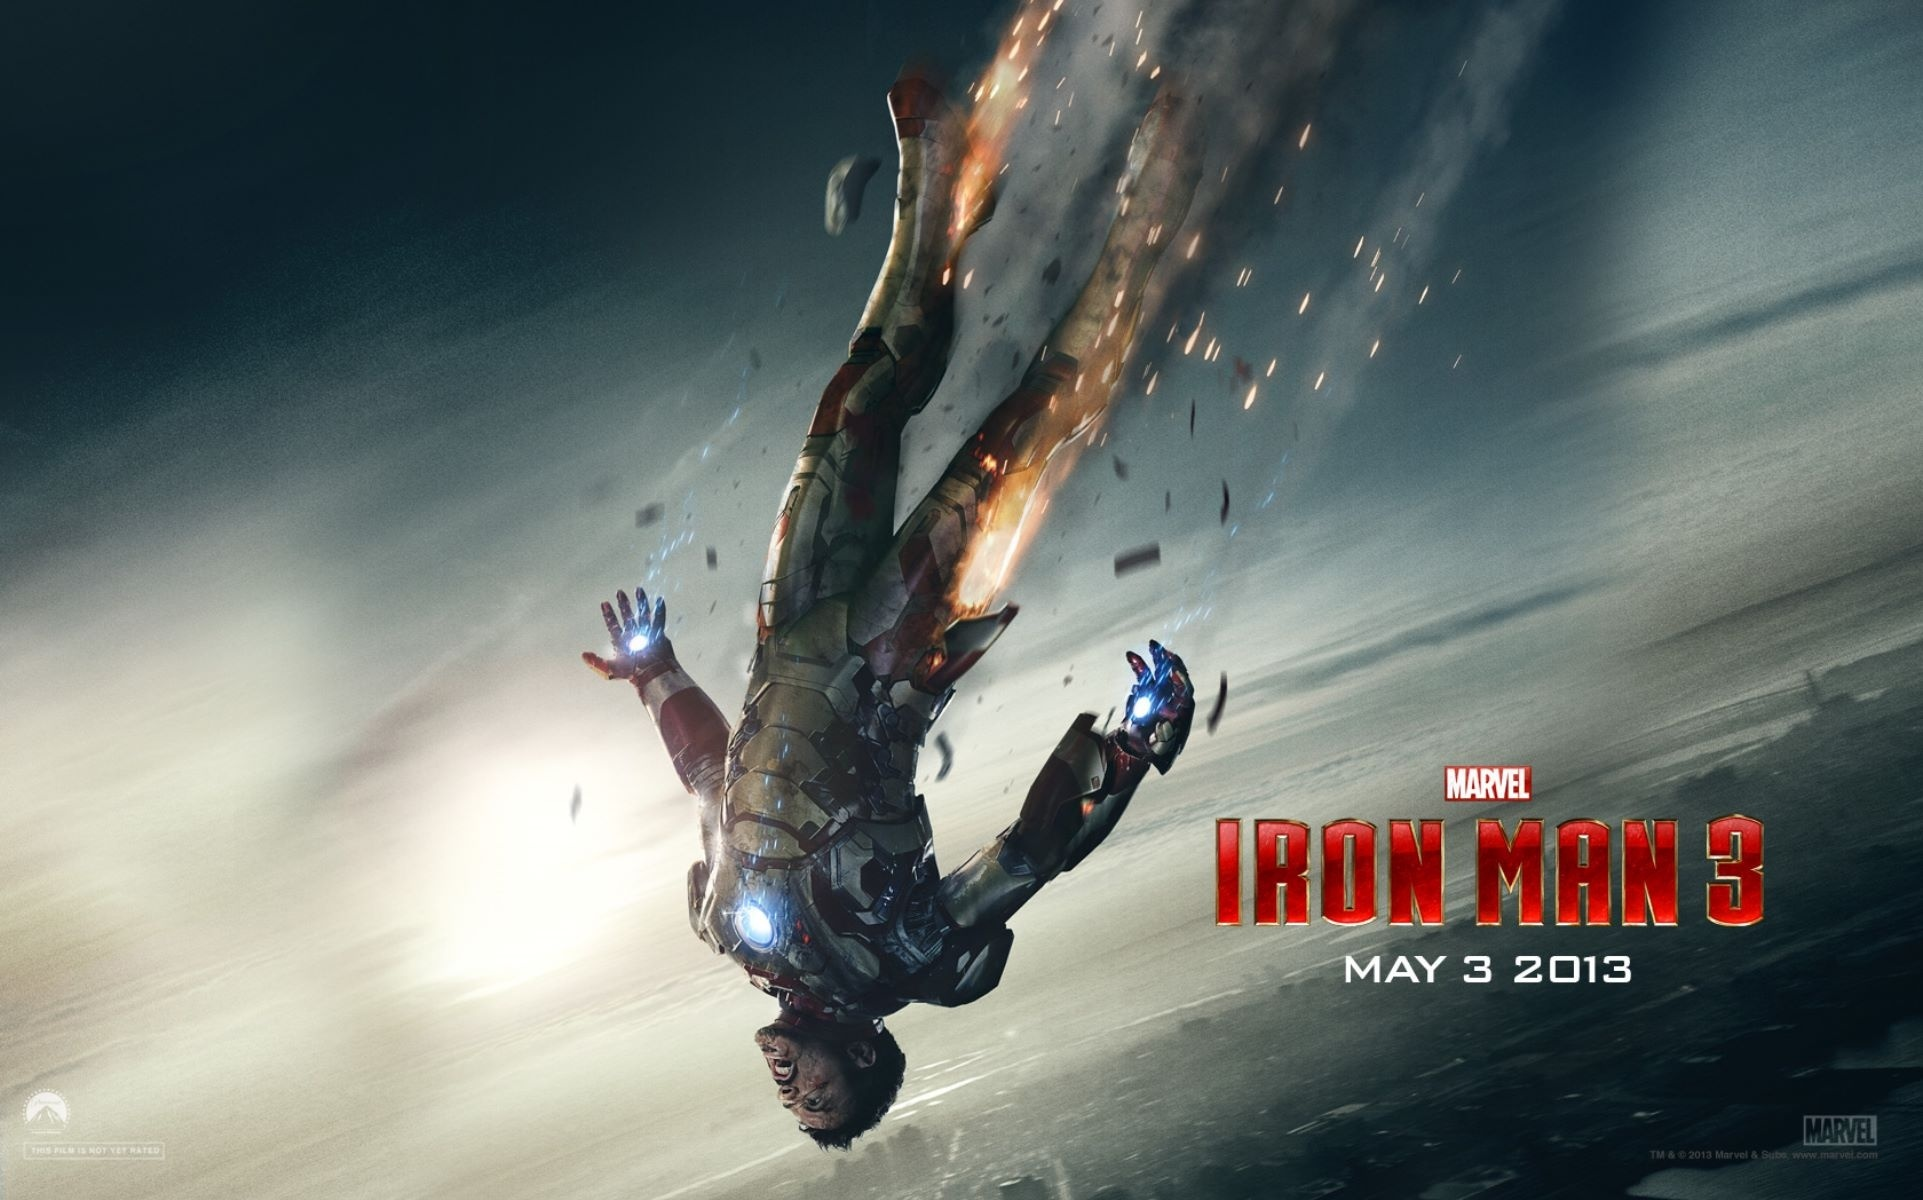 Iron Man 3 Heroes Fall HD Wallpaper